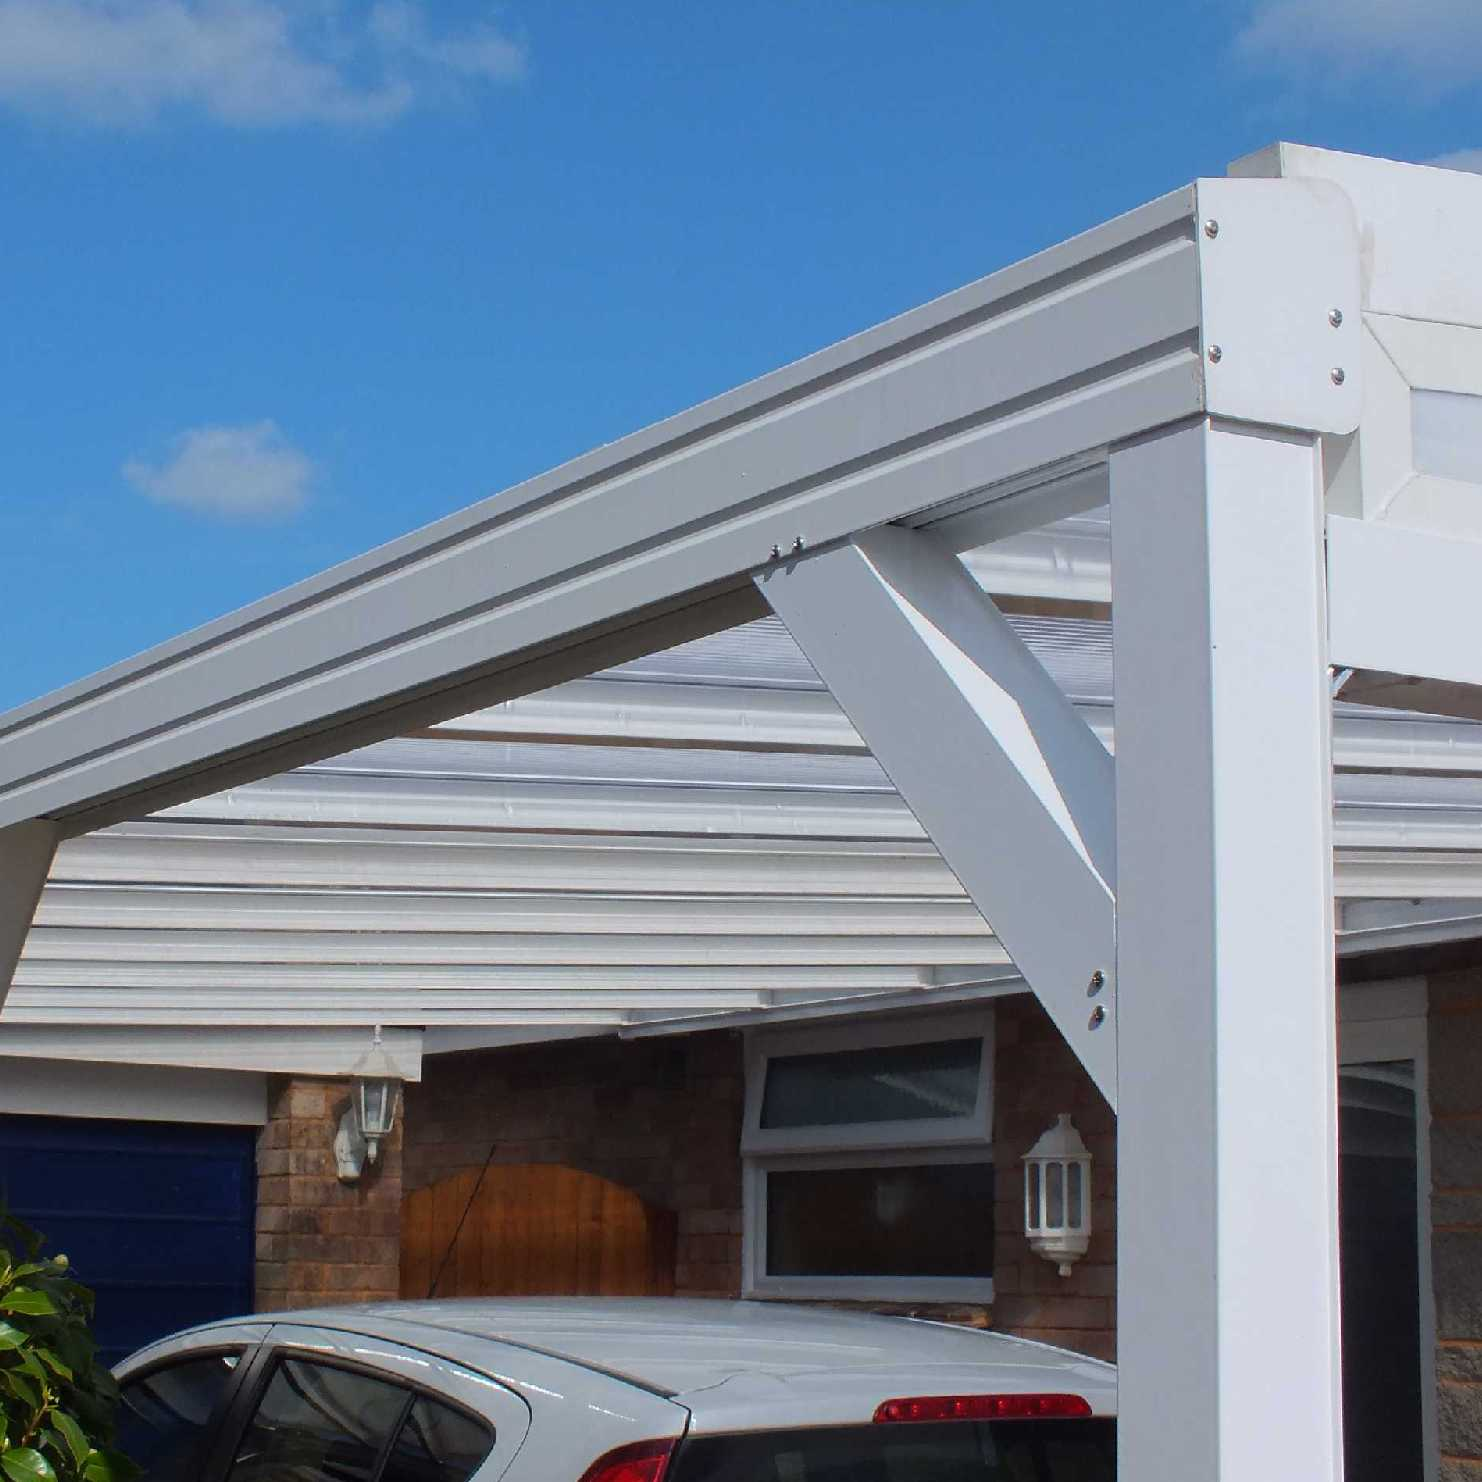 Great deals on Omega Smart Lean-To Canopy with 16mm Polycarbonate Glazing - 6.0m (W) x 4.0m (P), (3) Supporting Posts